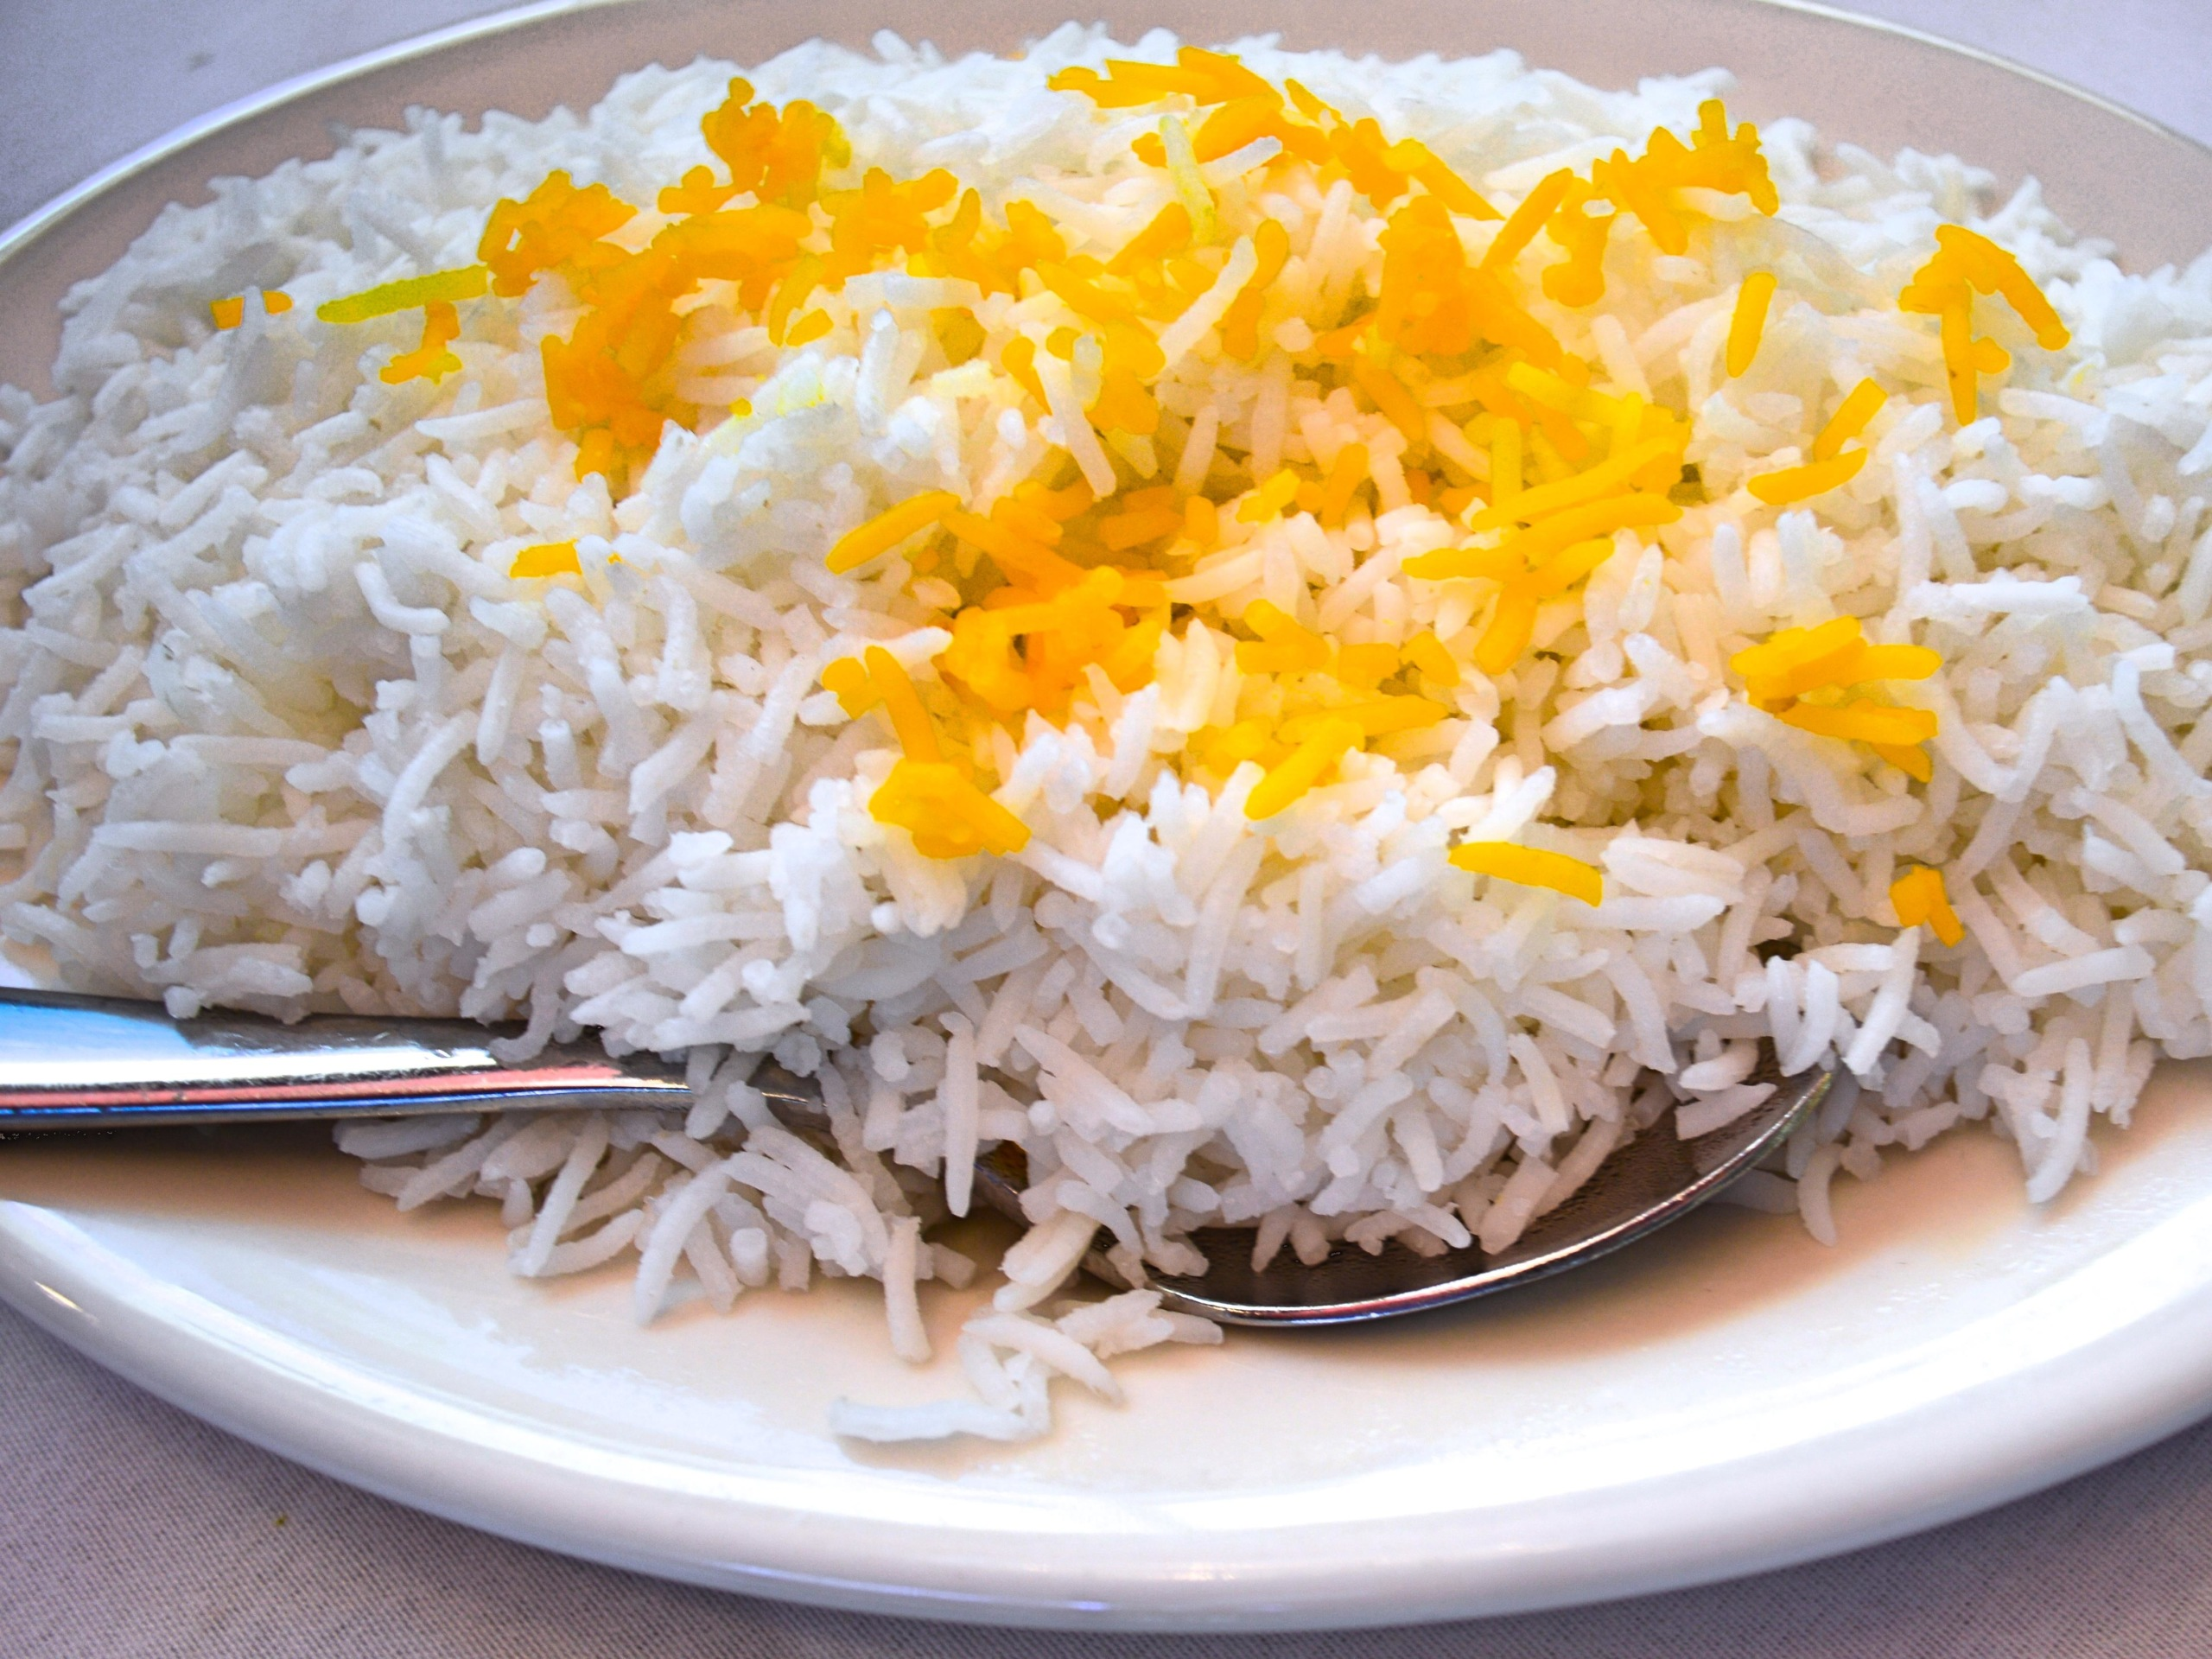 a bowl of cooked basmati rice, with some yellow rice decoration